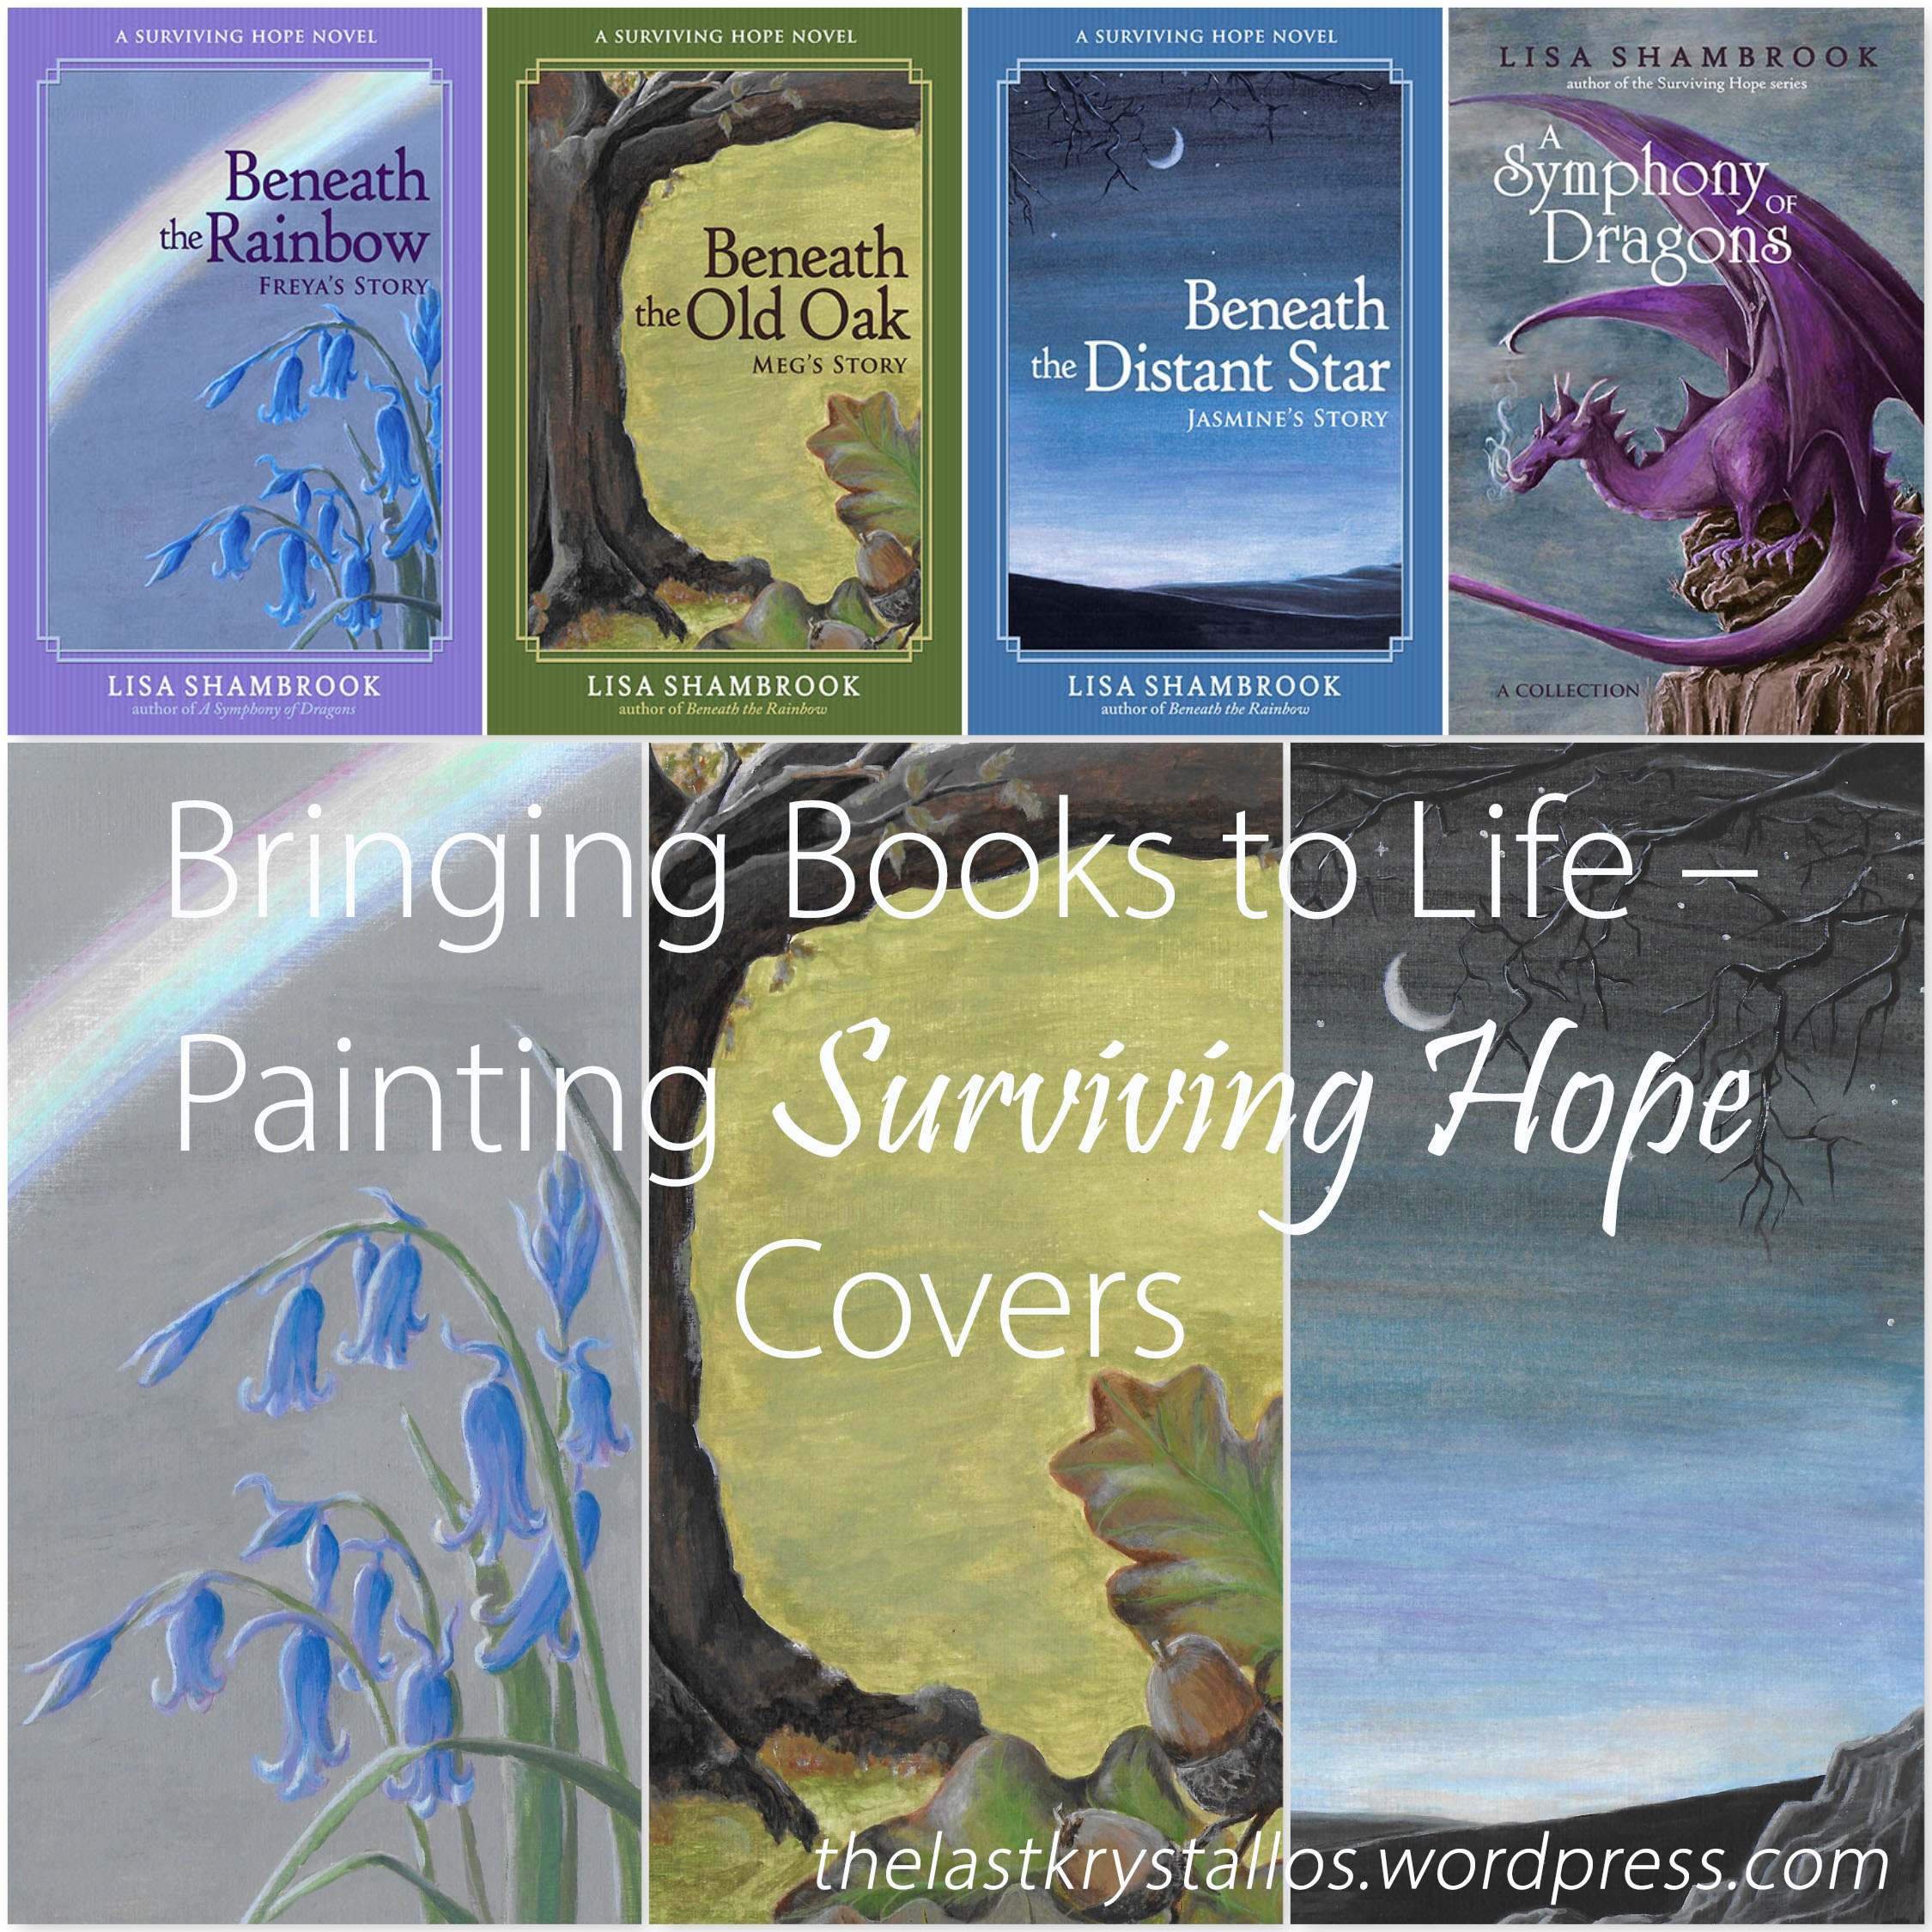 Bringing Books to Life - Painting Surviving Hope Covers - The Last Krystallos